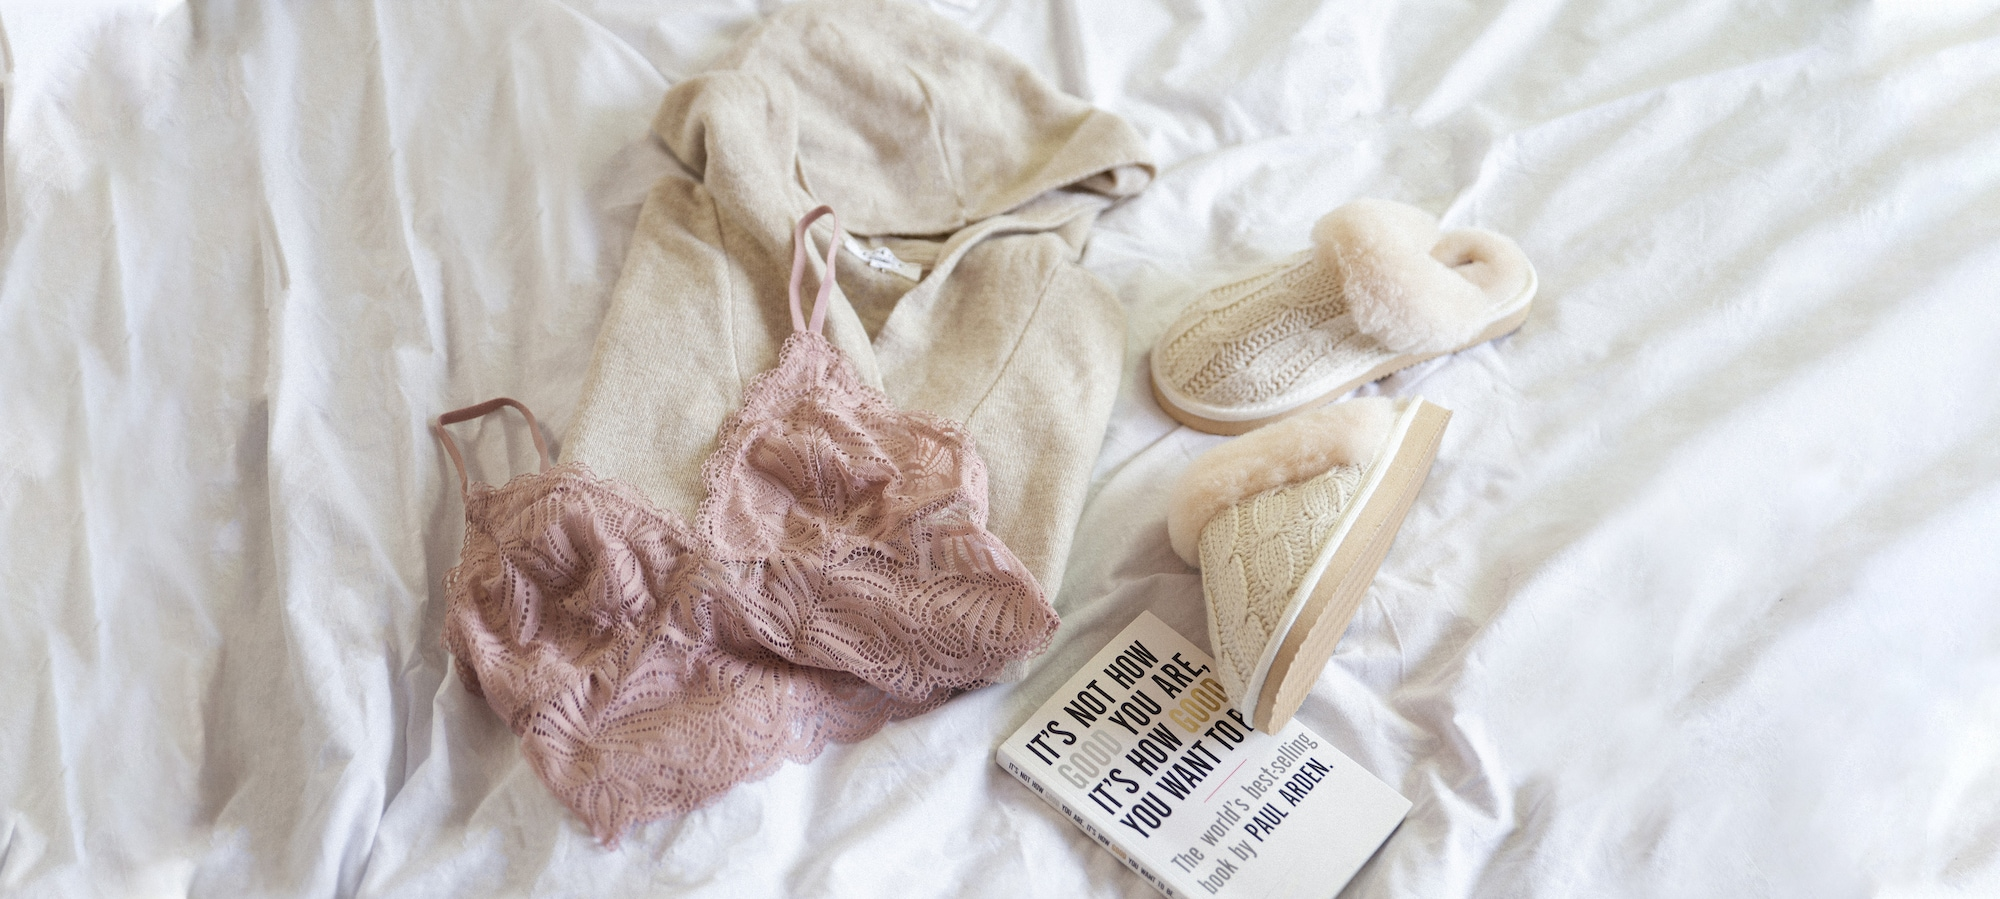 Cosy at Home Comfy Styles